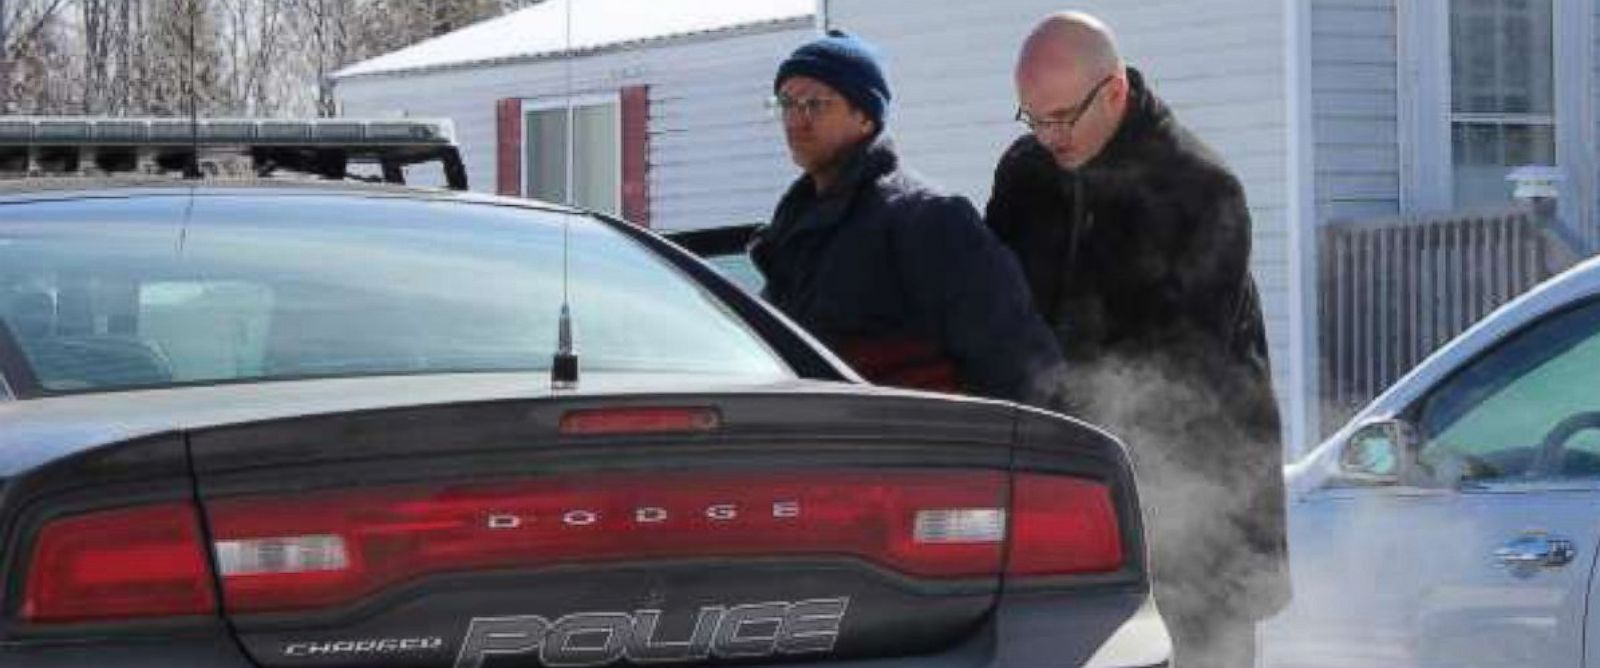 PHOTO: Maine State Police arrested Philip Scott Fournier, 55, on March 4, 2016, and charged him in connection with the beating death of 16-year-old Joyce McLain in the summer of 1980.